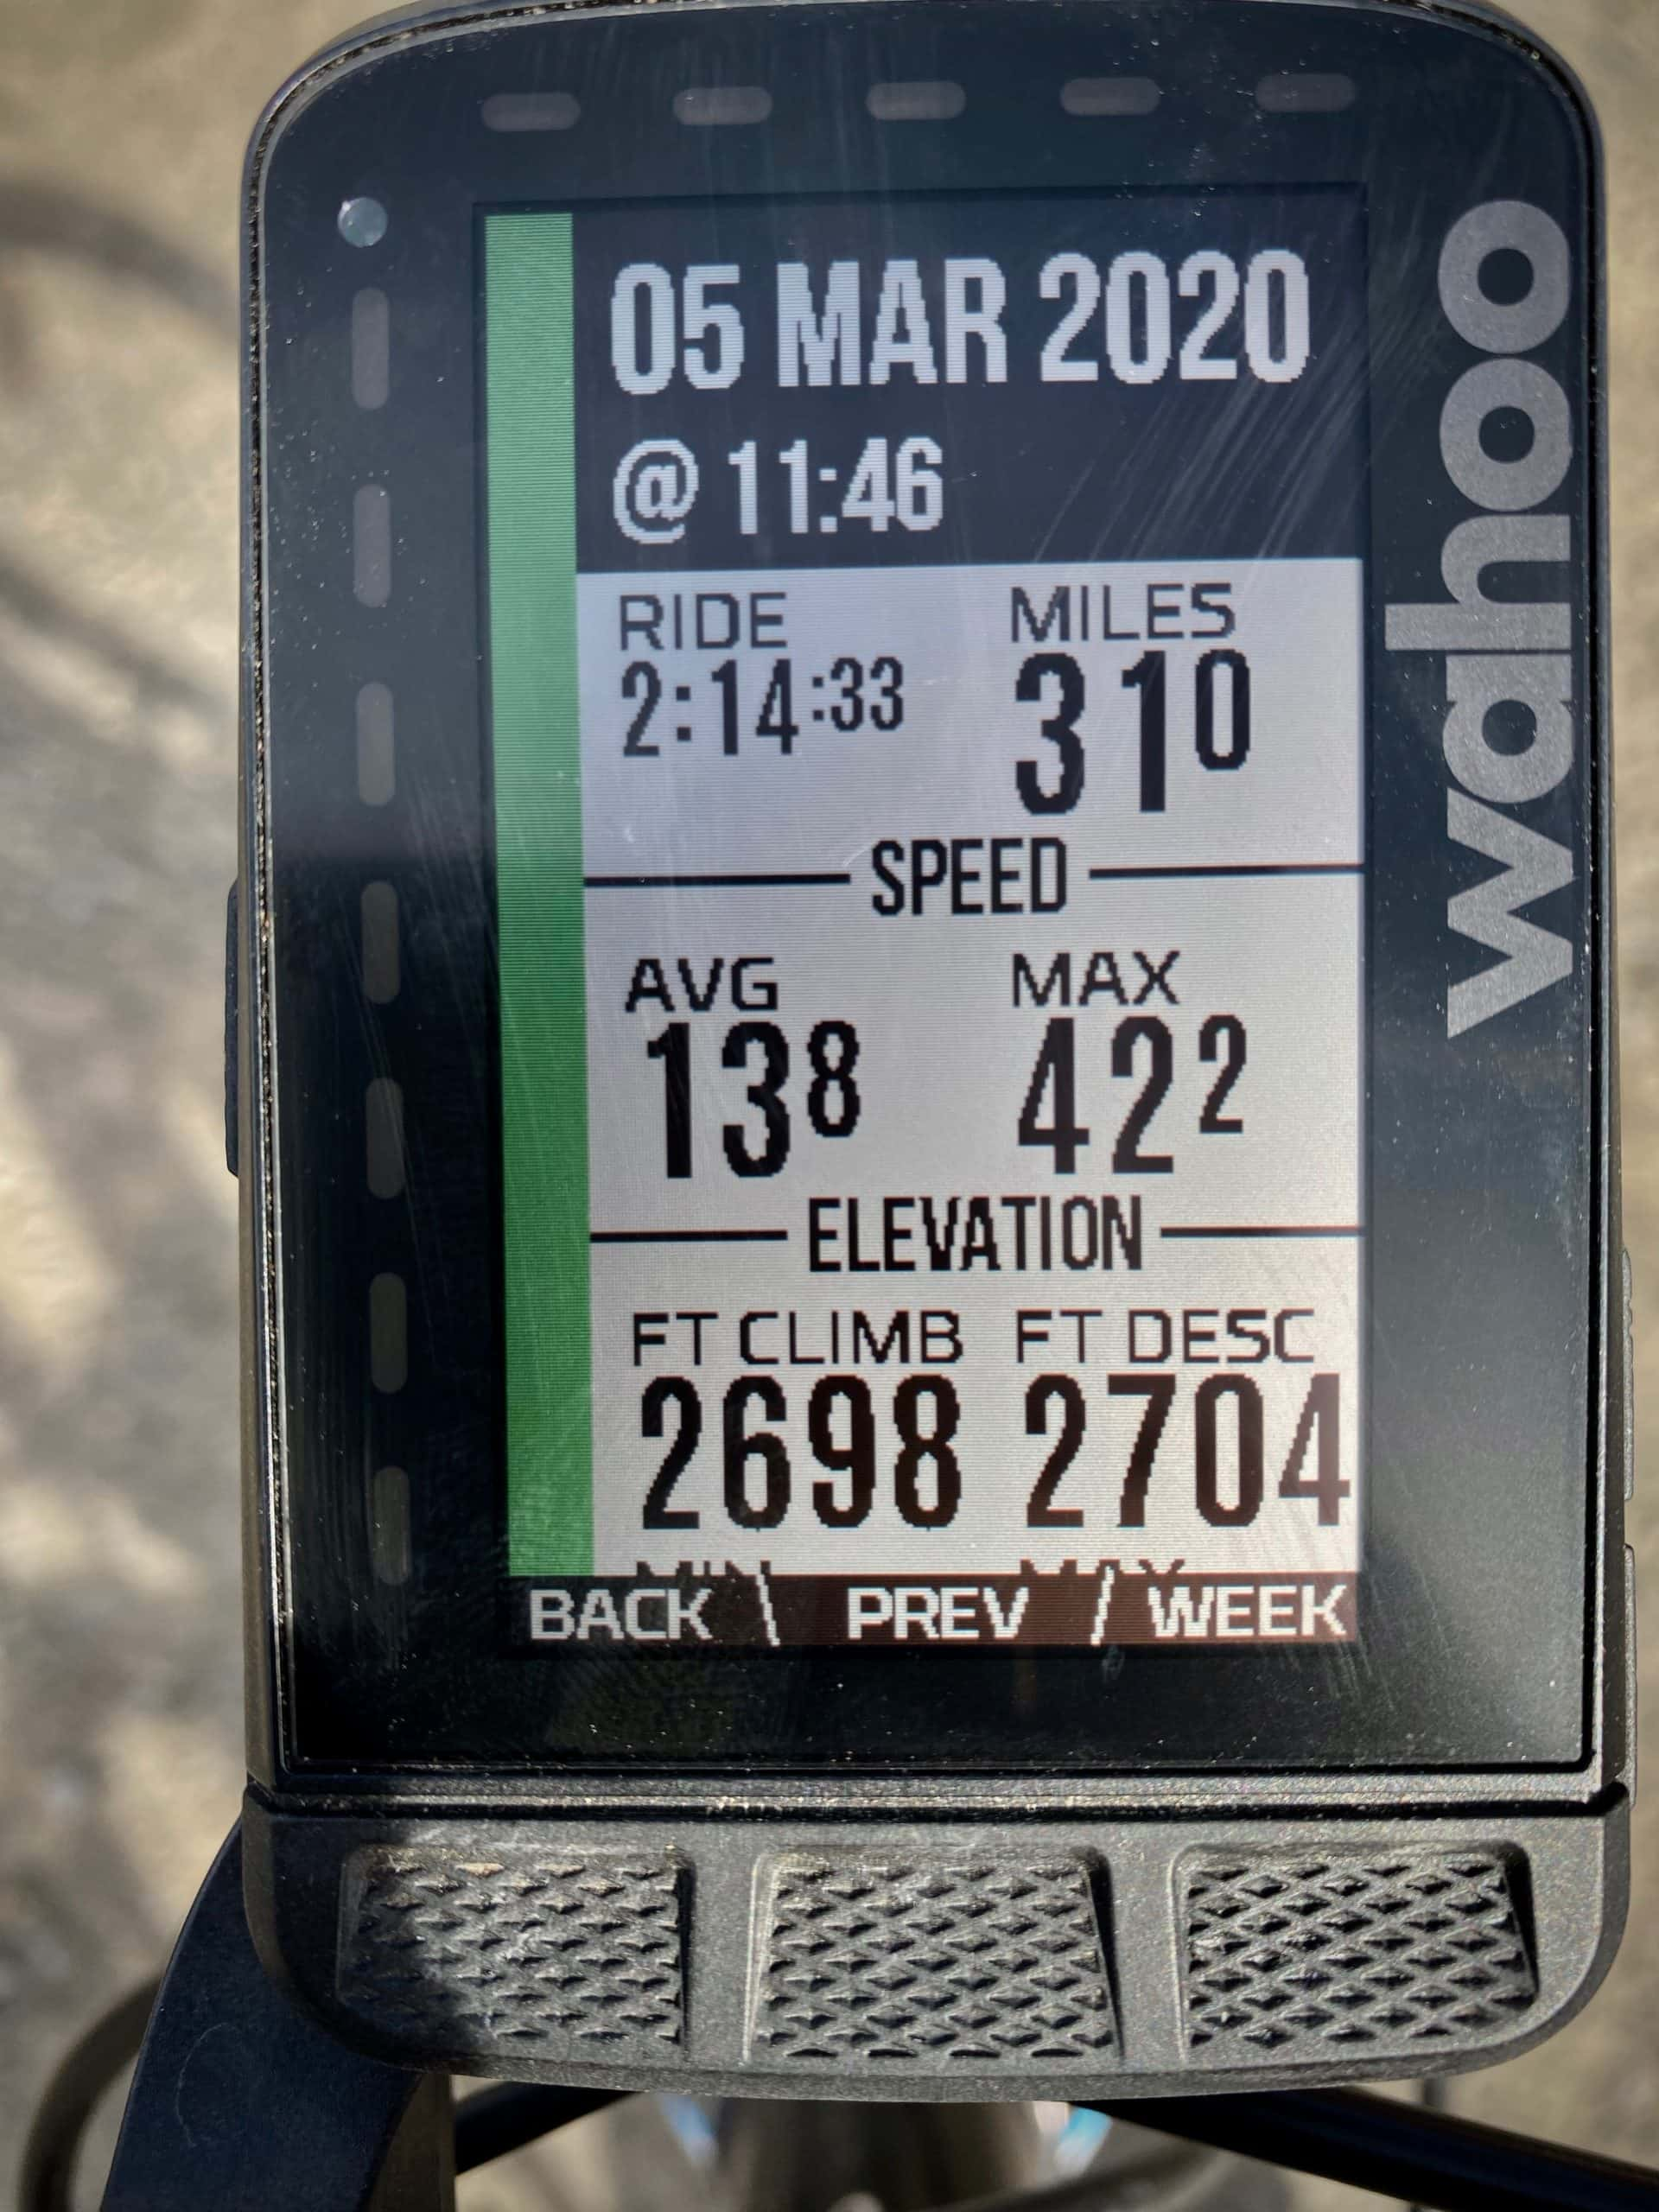 Captain O's ride metrics for The Big One6 route near Madras, OR.